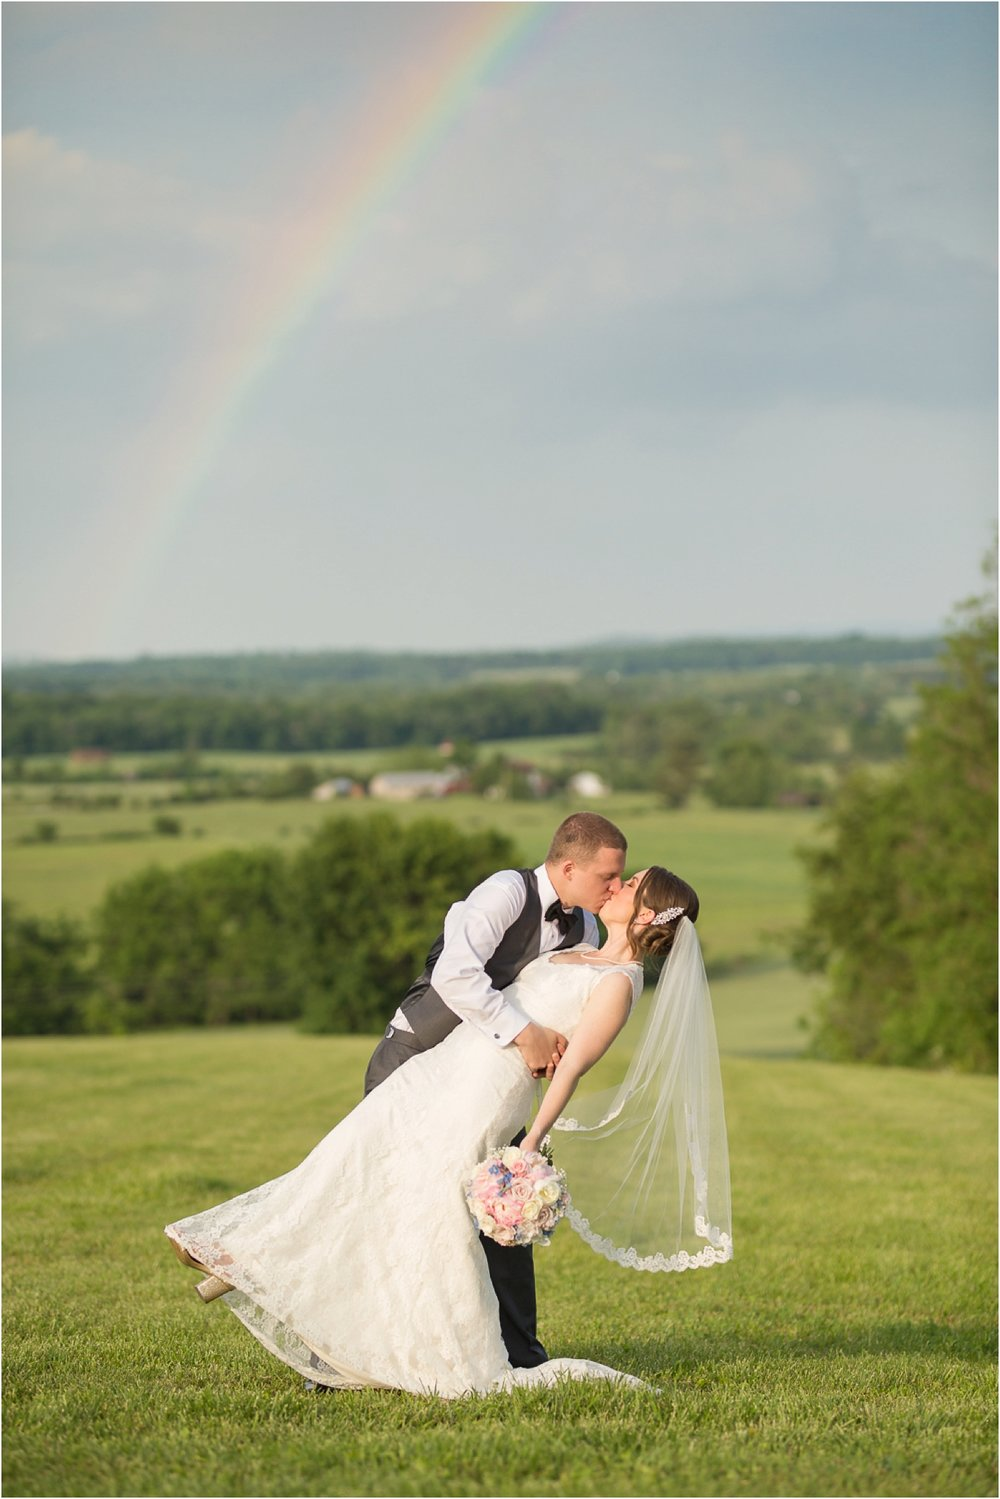 Gettysburg-lodges-wedding-photos-84.jpg